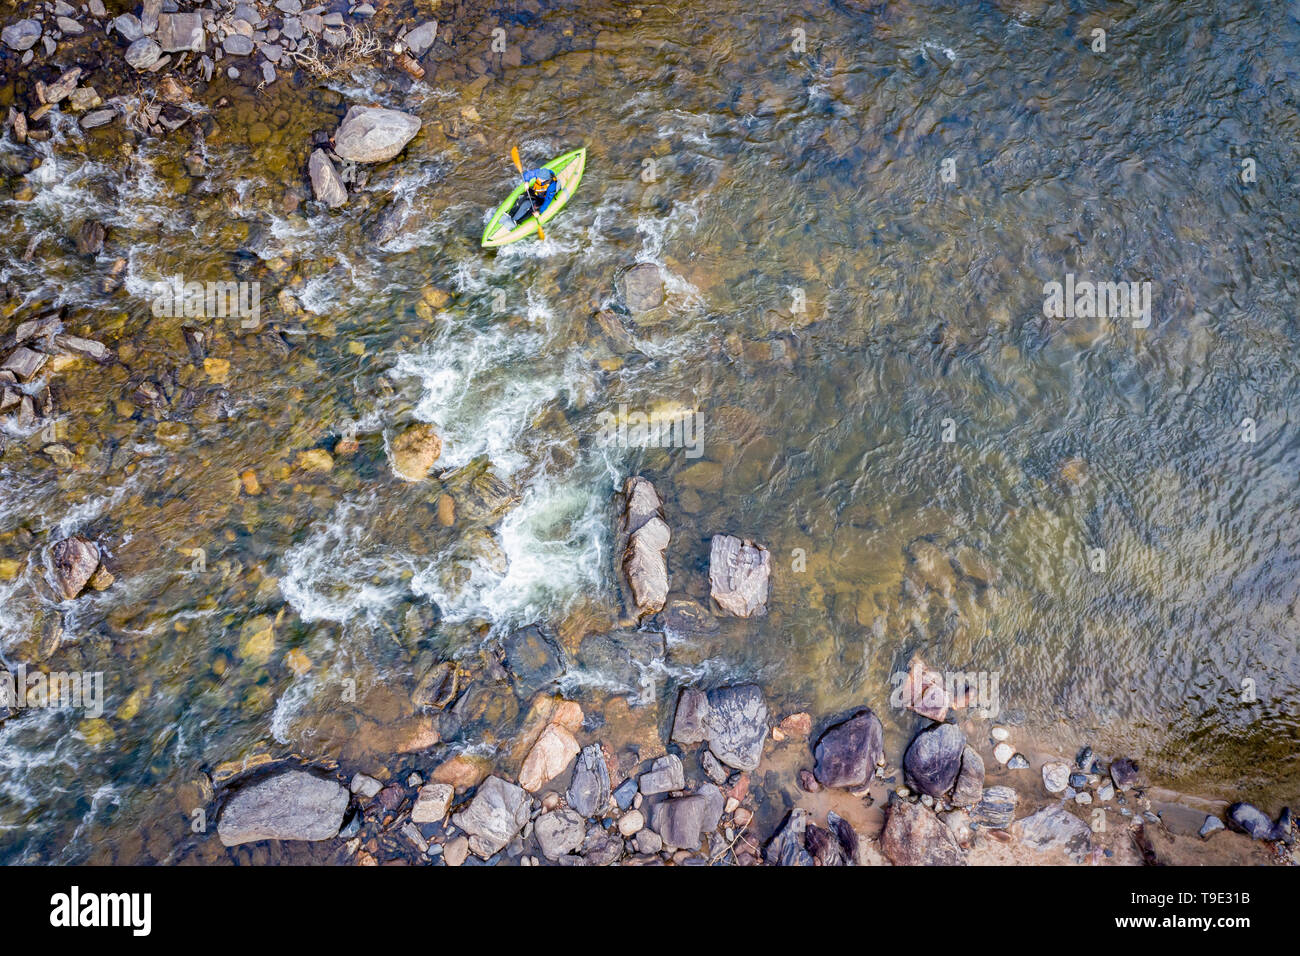 inflatable whitewater kayak below rapid on a mountain river (Poudre River in Colorado), aerial perspective - Stock Image